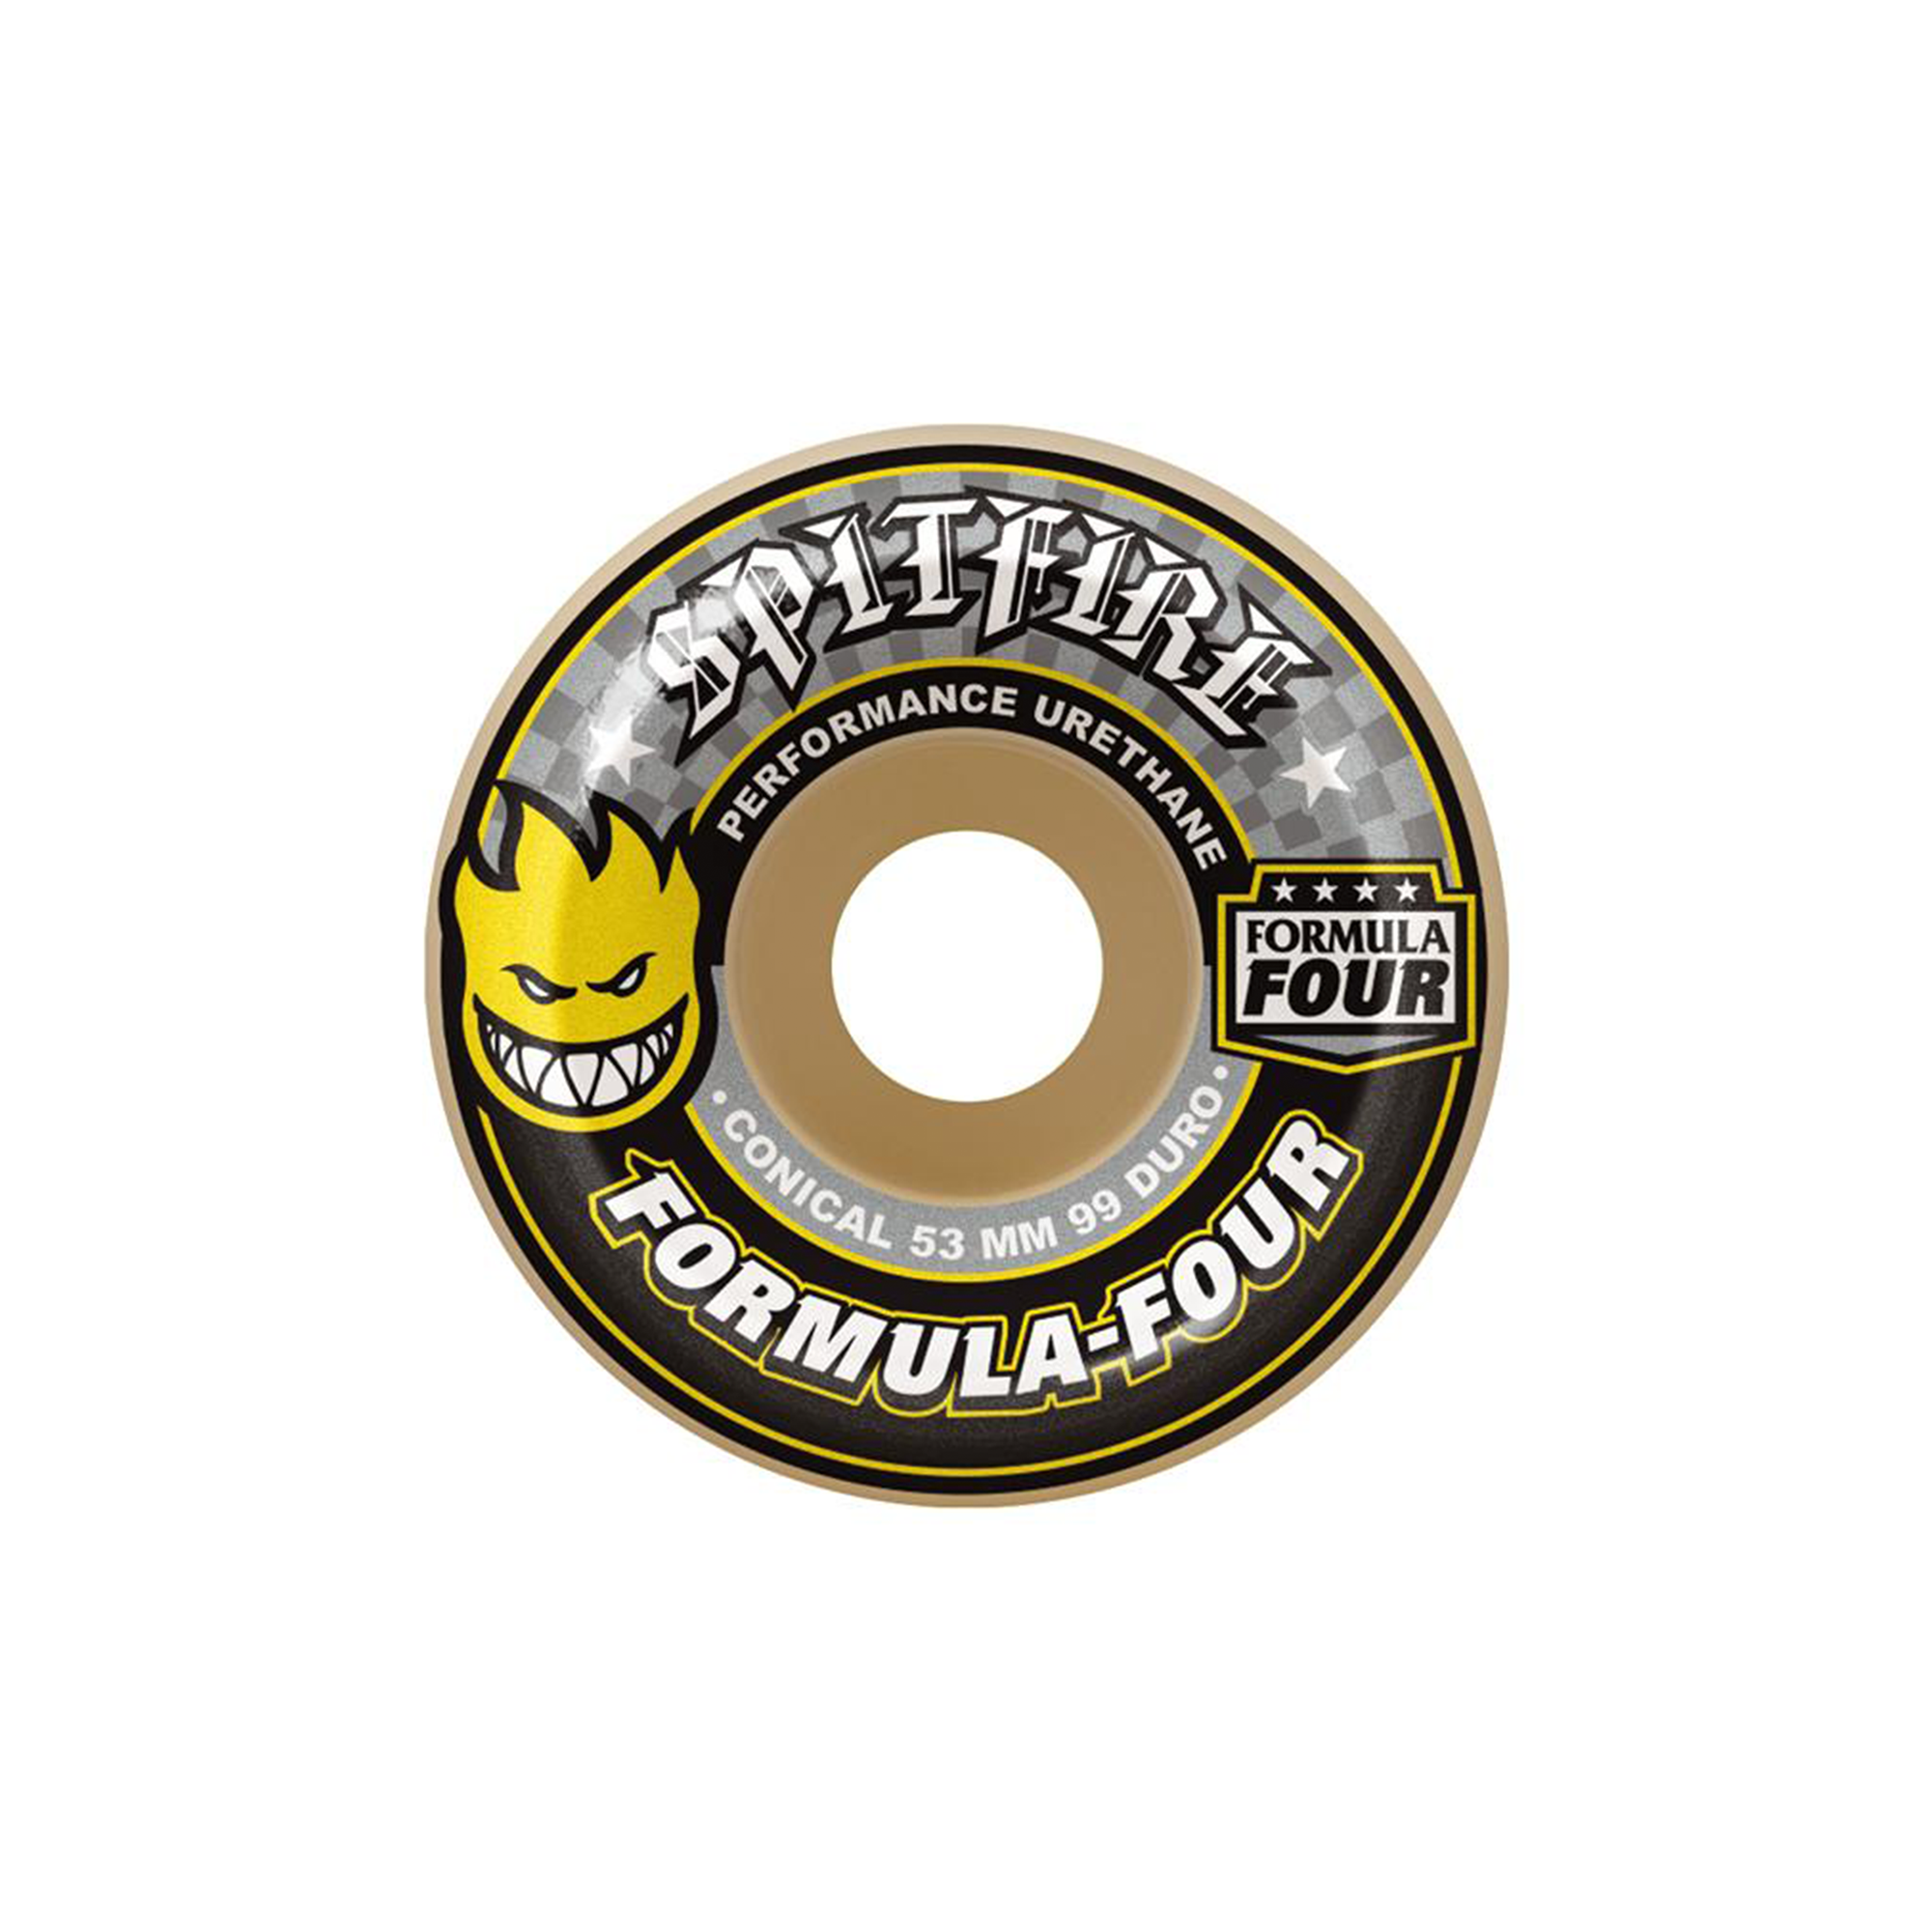 Spitfire Formula Four Conical 99 Wheels Product Photo #1